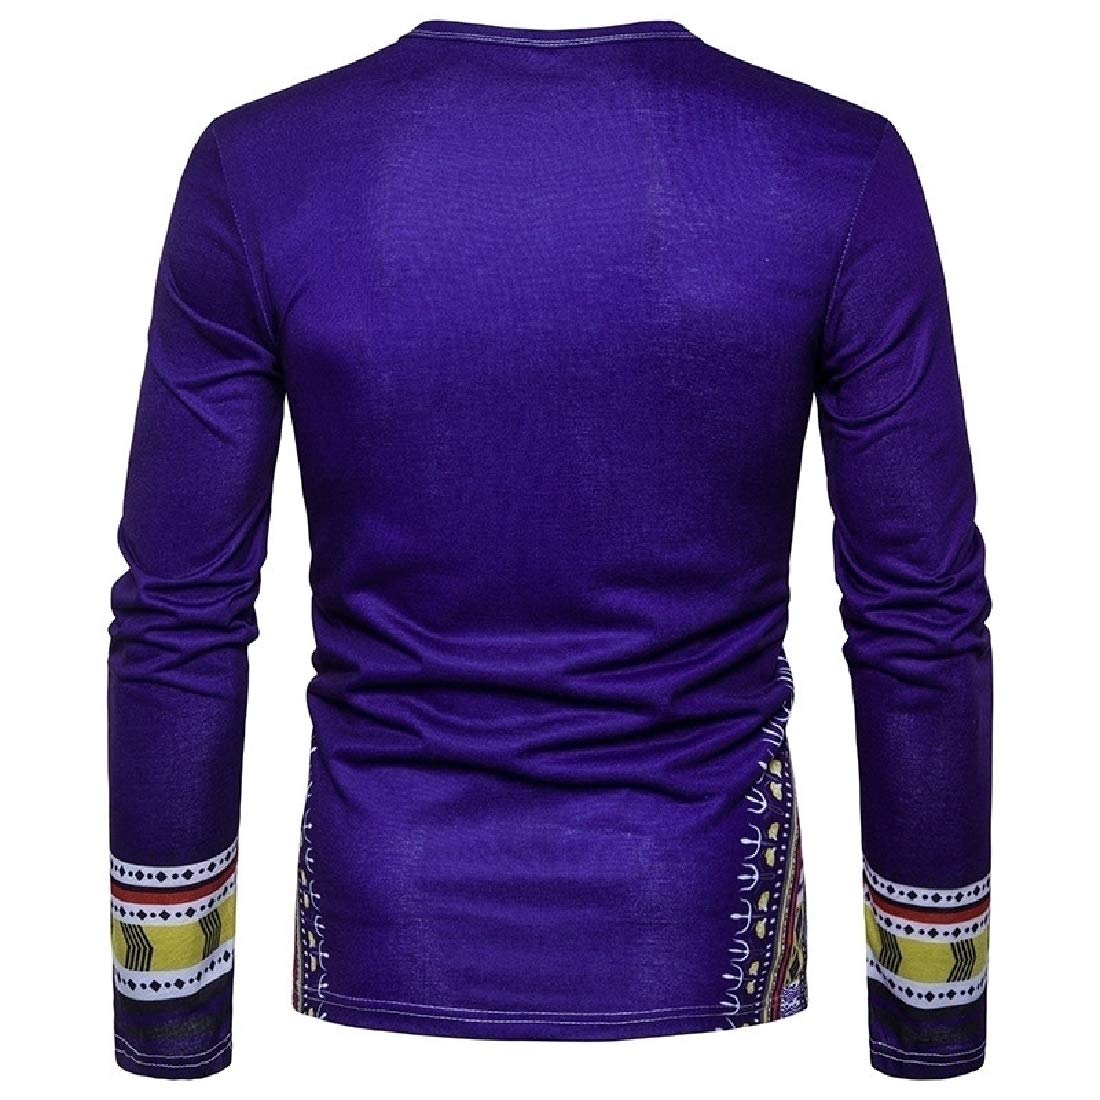 Doufine Men's Tops Spell Color Dashiki African Print Folk Style T-shirts Navy Blue M by Doufine--men clothes (Image #3)